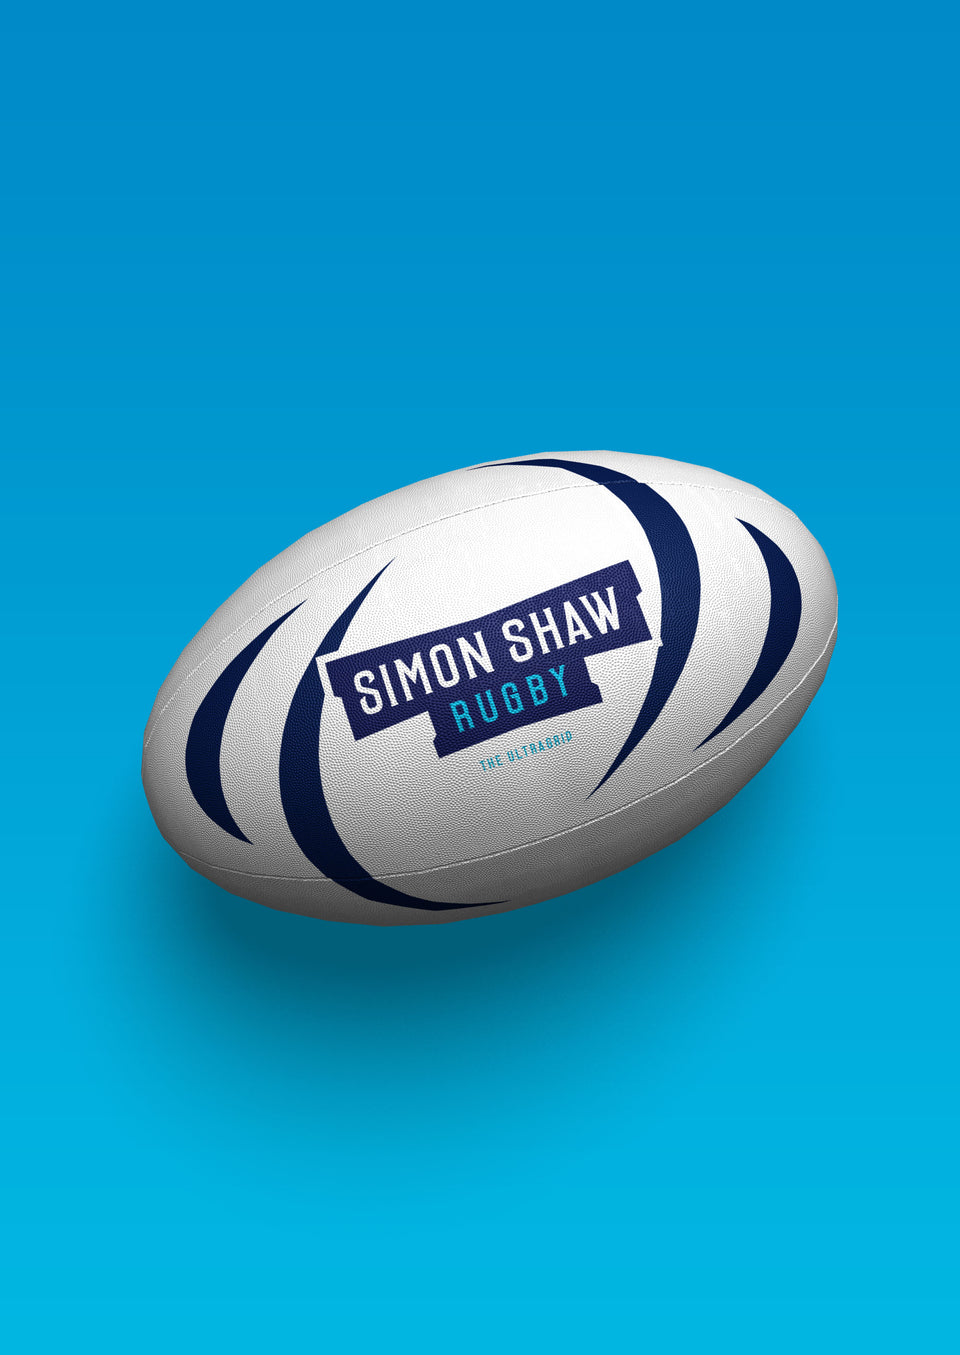 The UltraGrip Rugby Ball